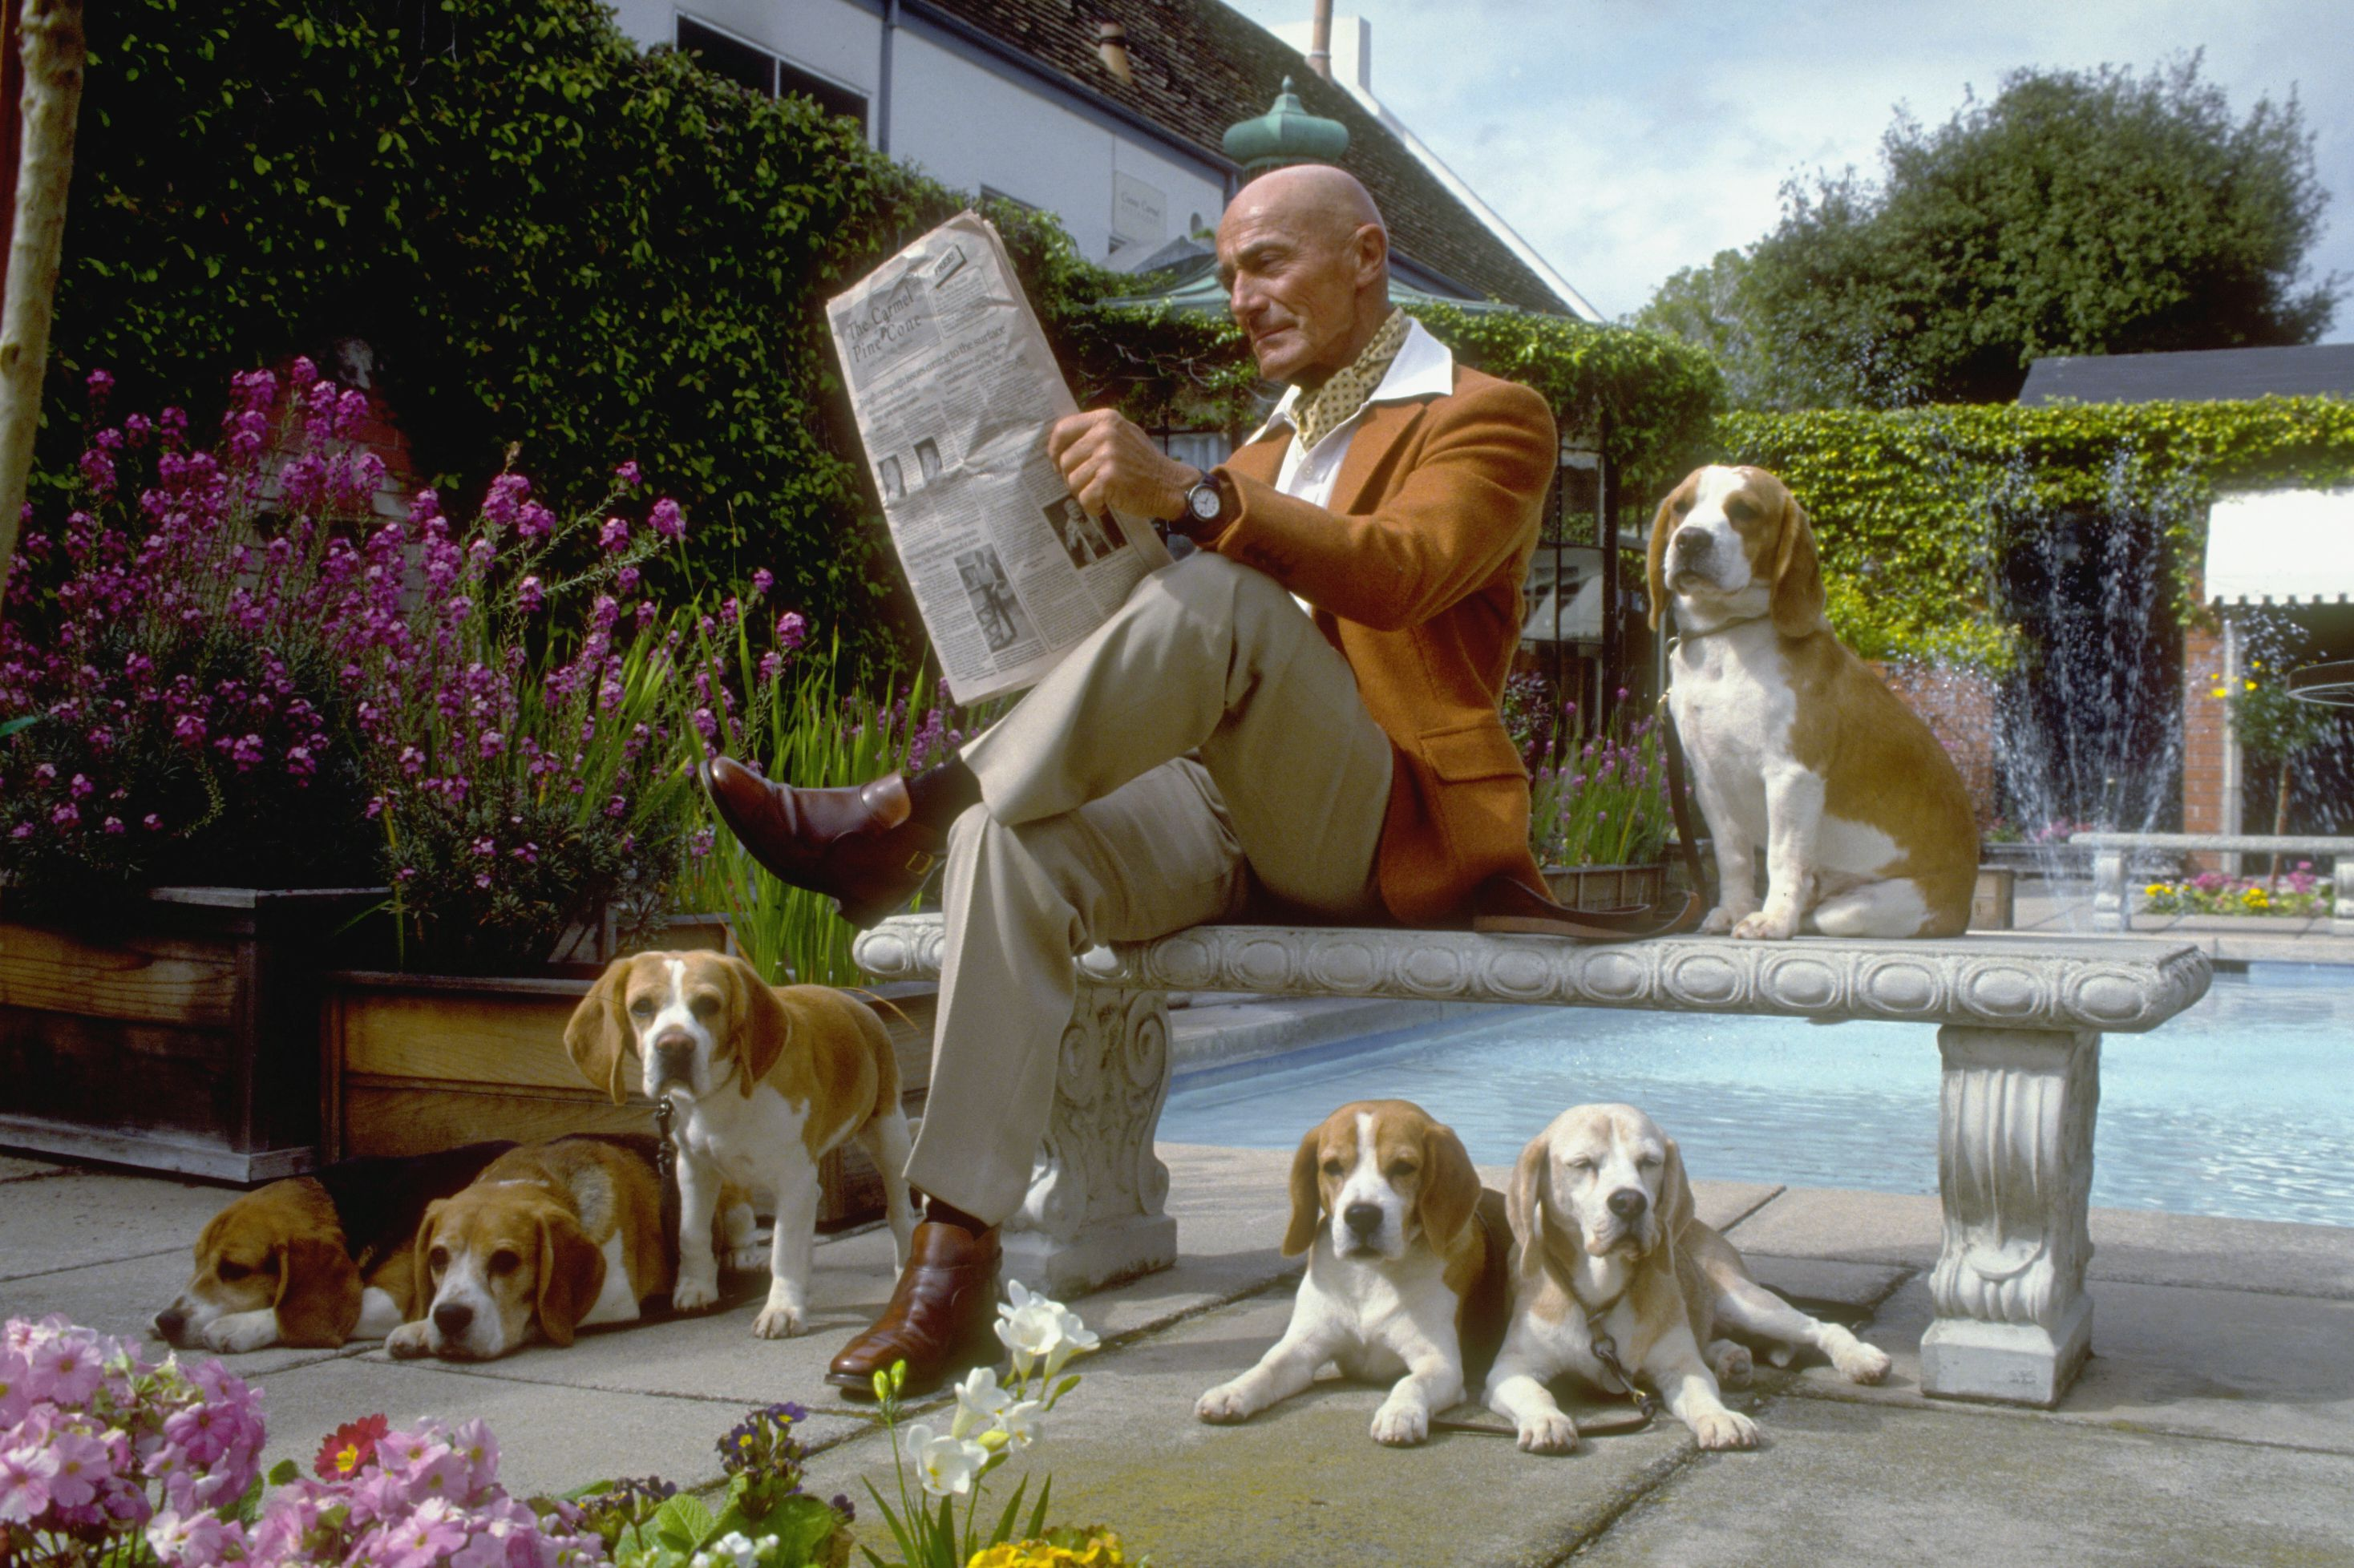 Dog Owner With Beagles